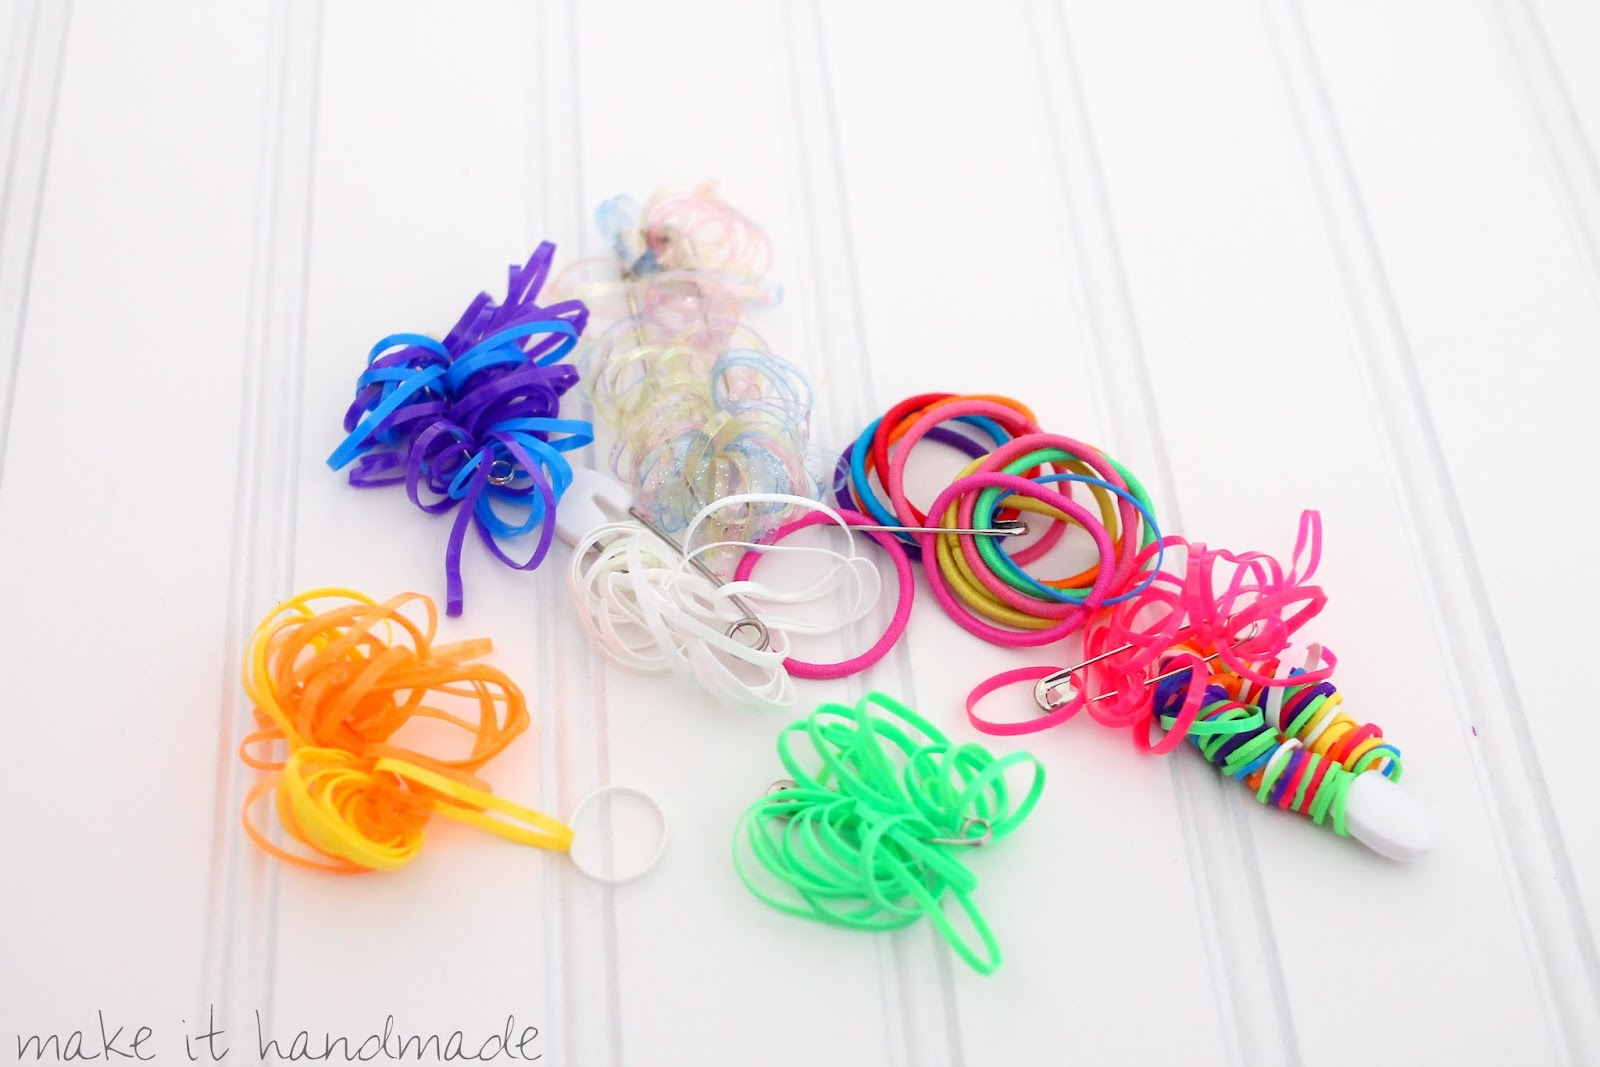 a simple storage solution for hair ties and rubber bands!